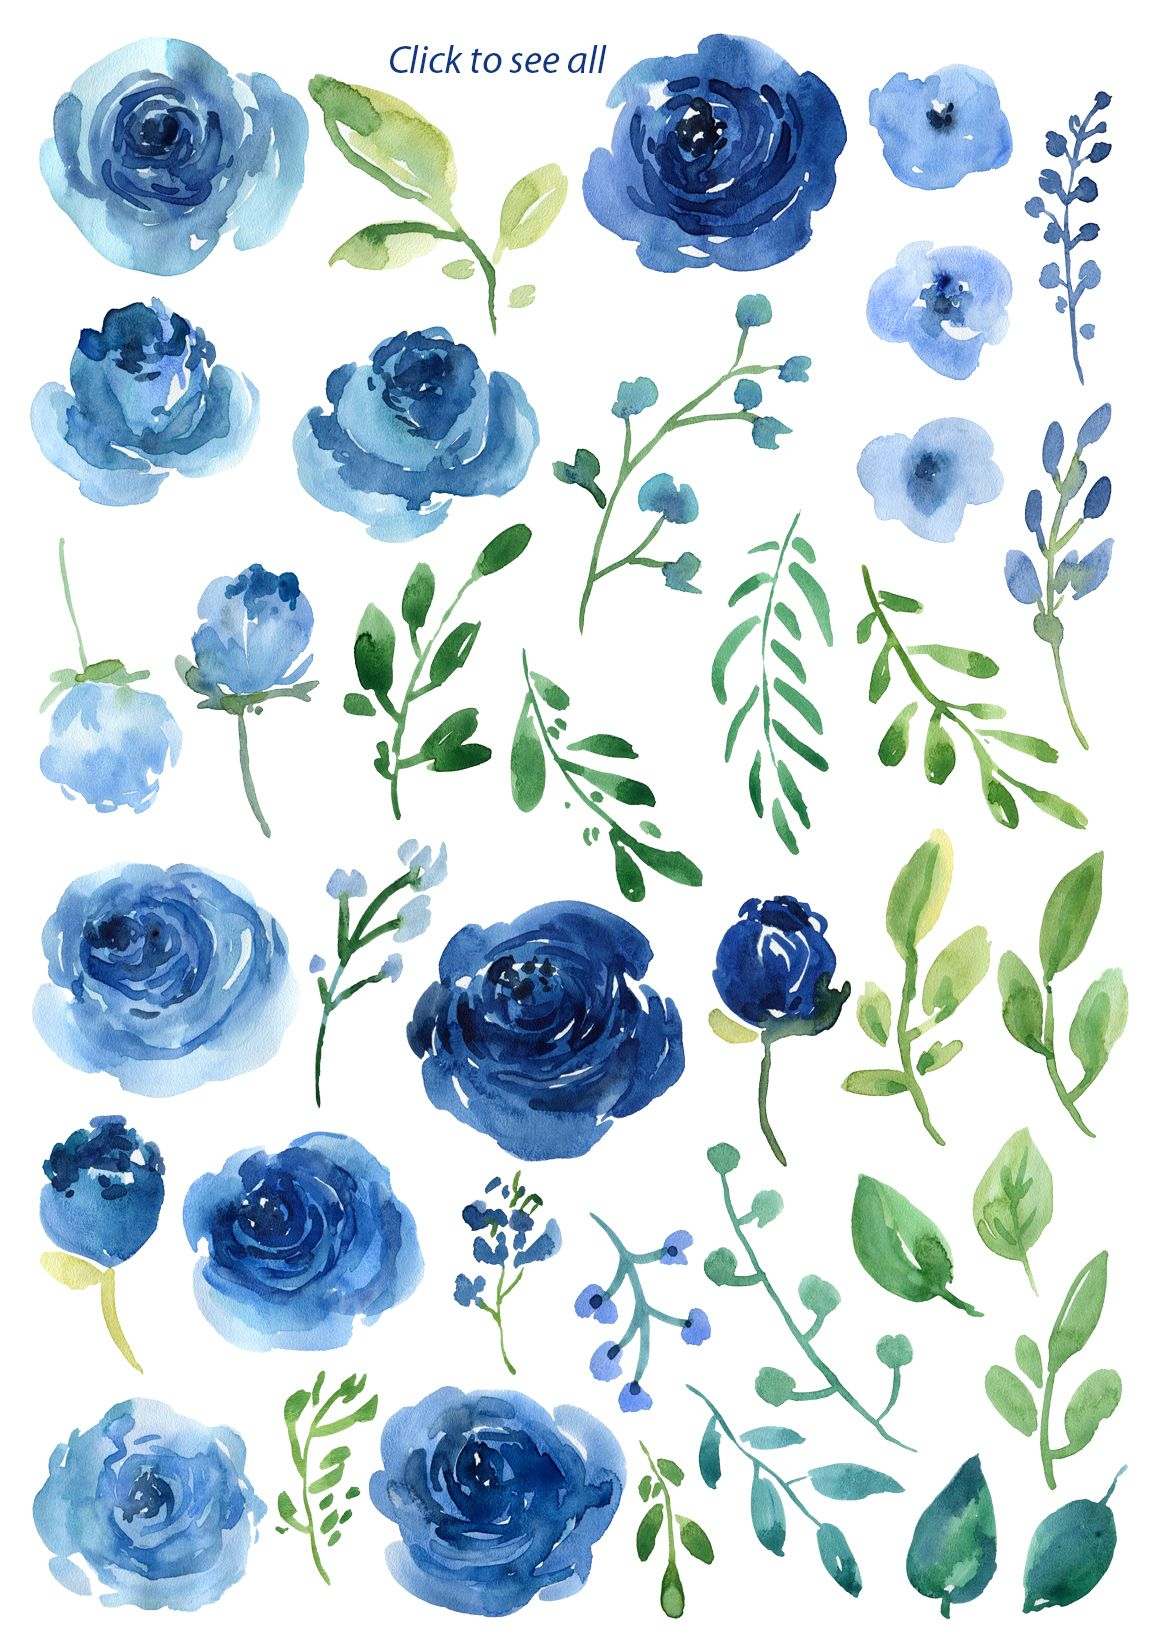 Blue Watercolor Roses Flowers Leaves Watercolor Rose Watercolor